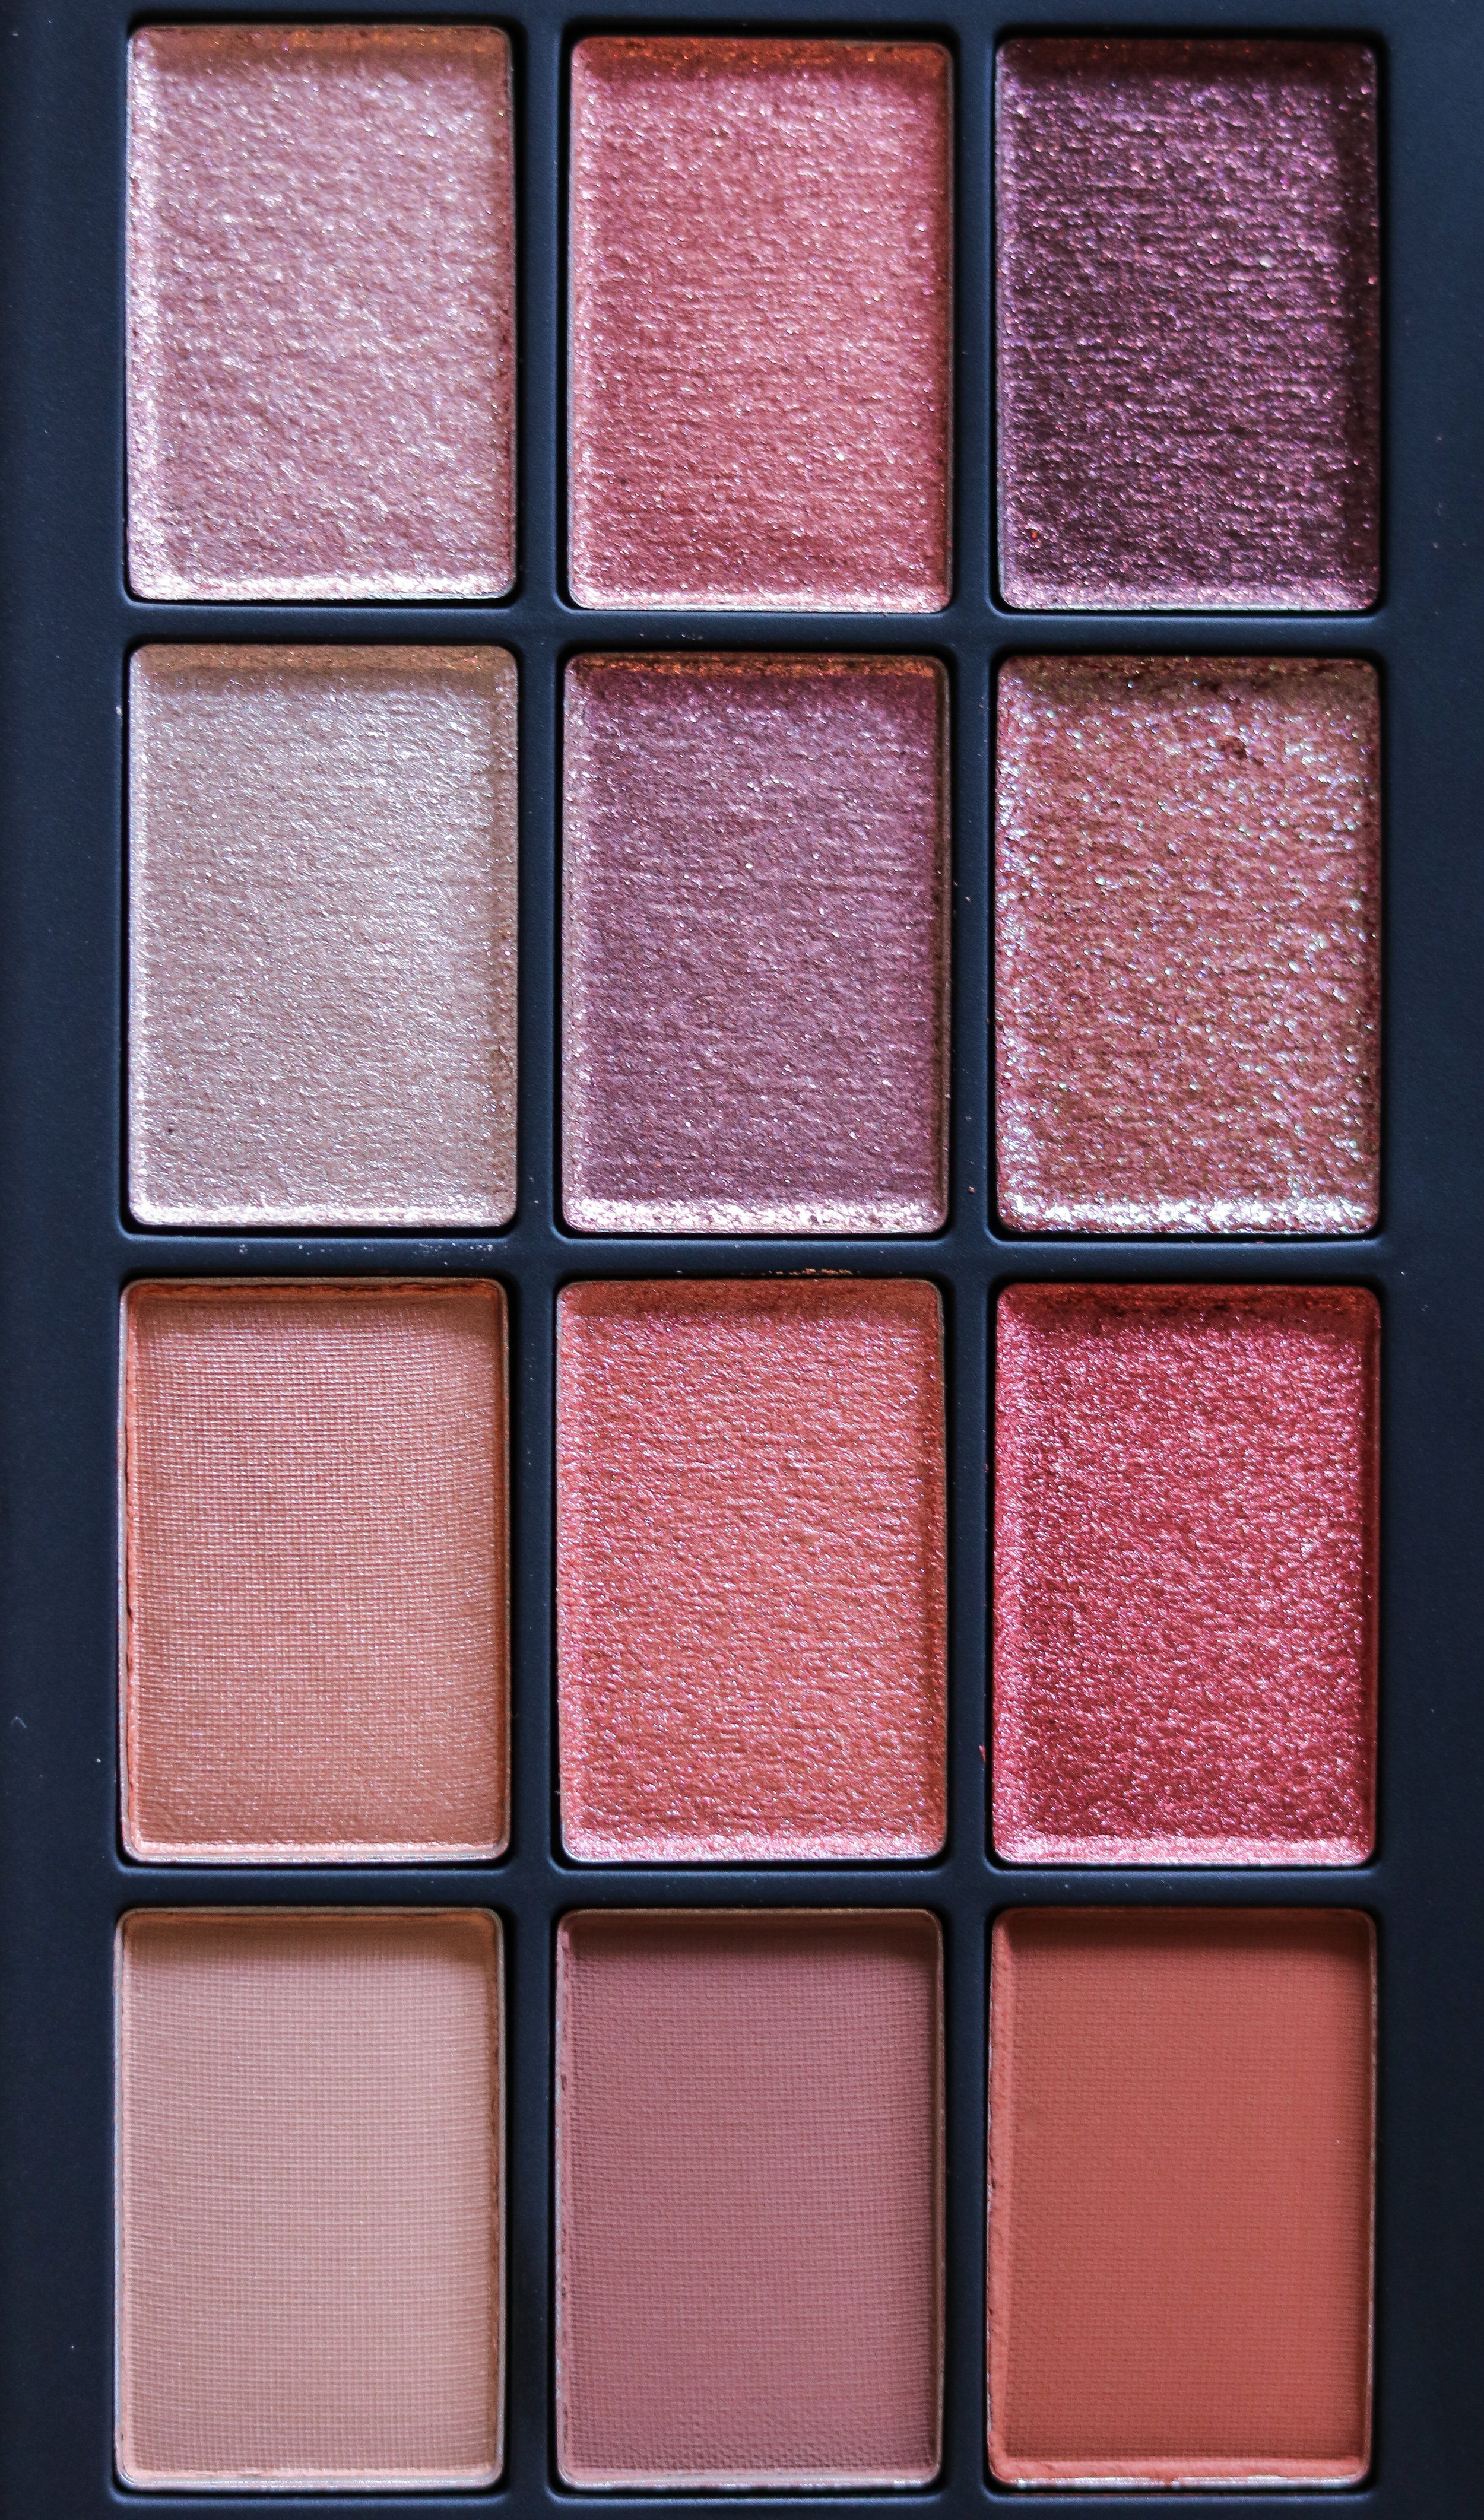 The Hungarian Brunette Nars Ignited eyeshadow palette review and swatches